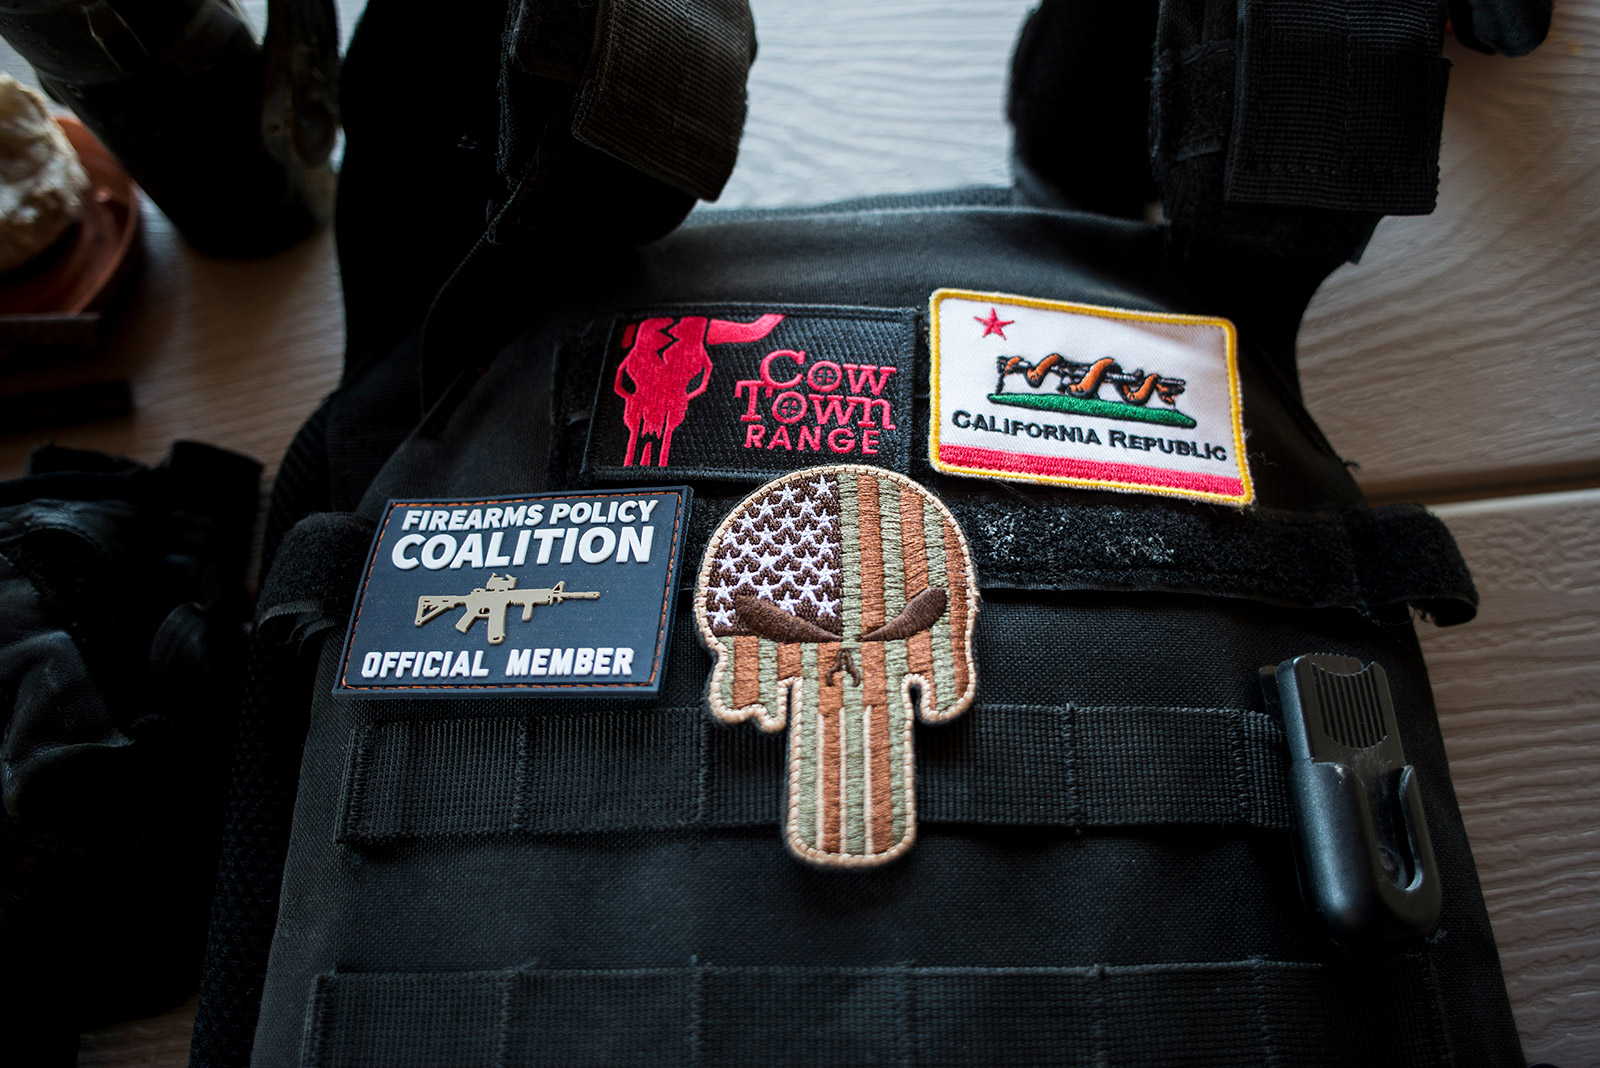 Bob Maupin's bulletproof vest is adorned with patches, including an American flag in the outline of a skull, which symbolizes a comic book character known as the Punisher – a vigilante who takes matters of the law into his own hands. Maupin wore this vest, a side pistol and a rifle while patrolling his property in the eastern San Diego County community of Boulevard on Aug. 30, 2017. <em>(Brandon Quester/inewsource)</em>